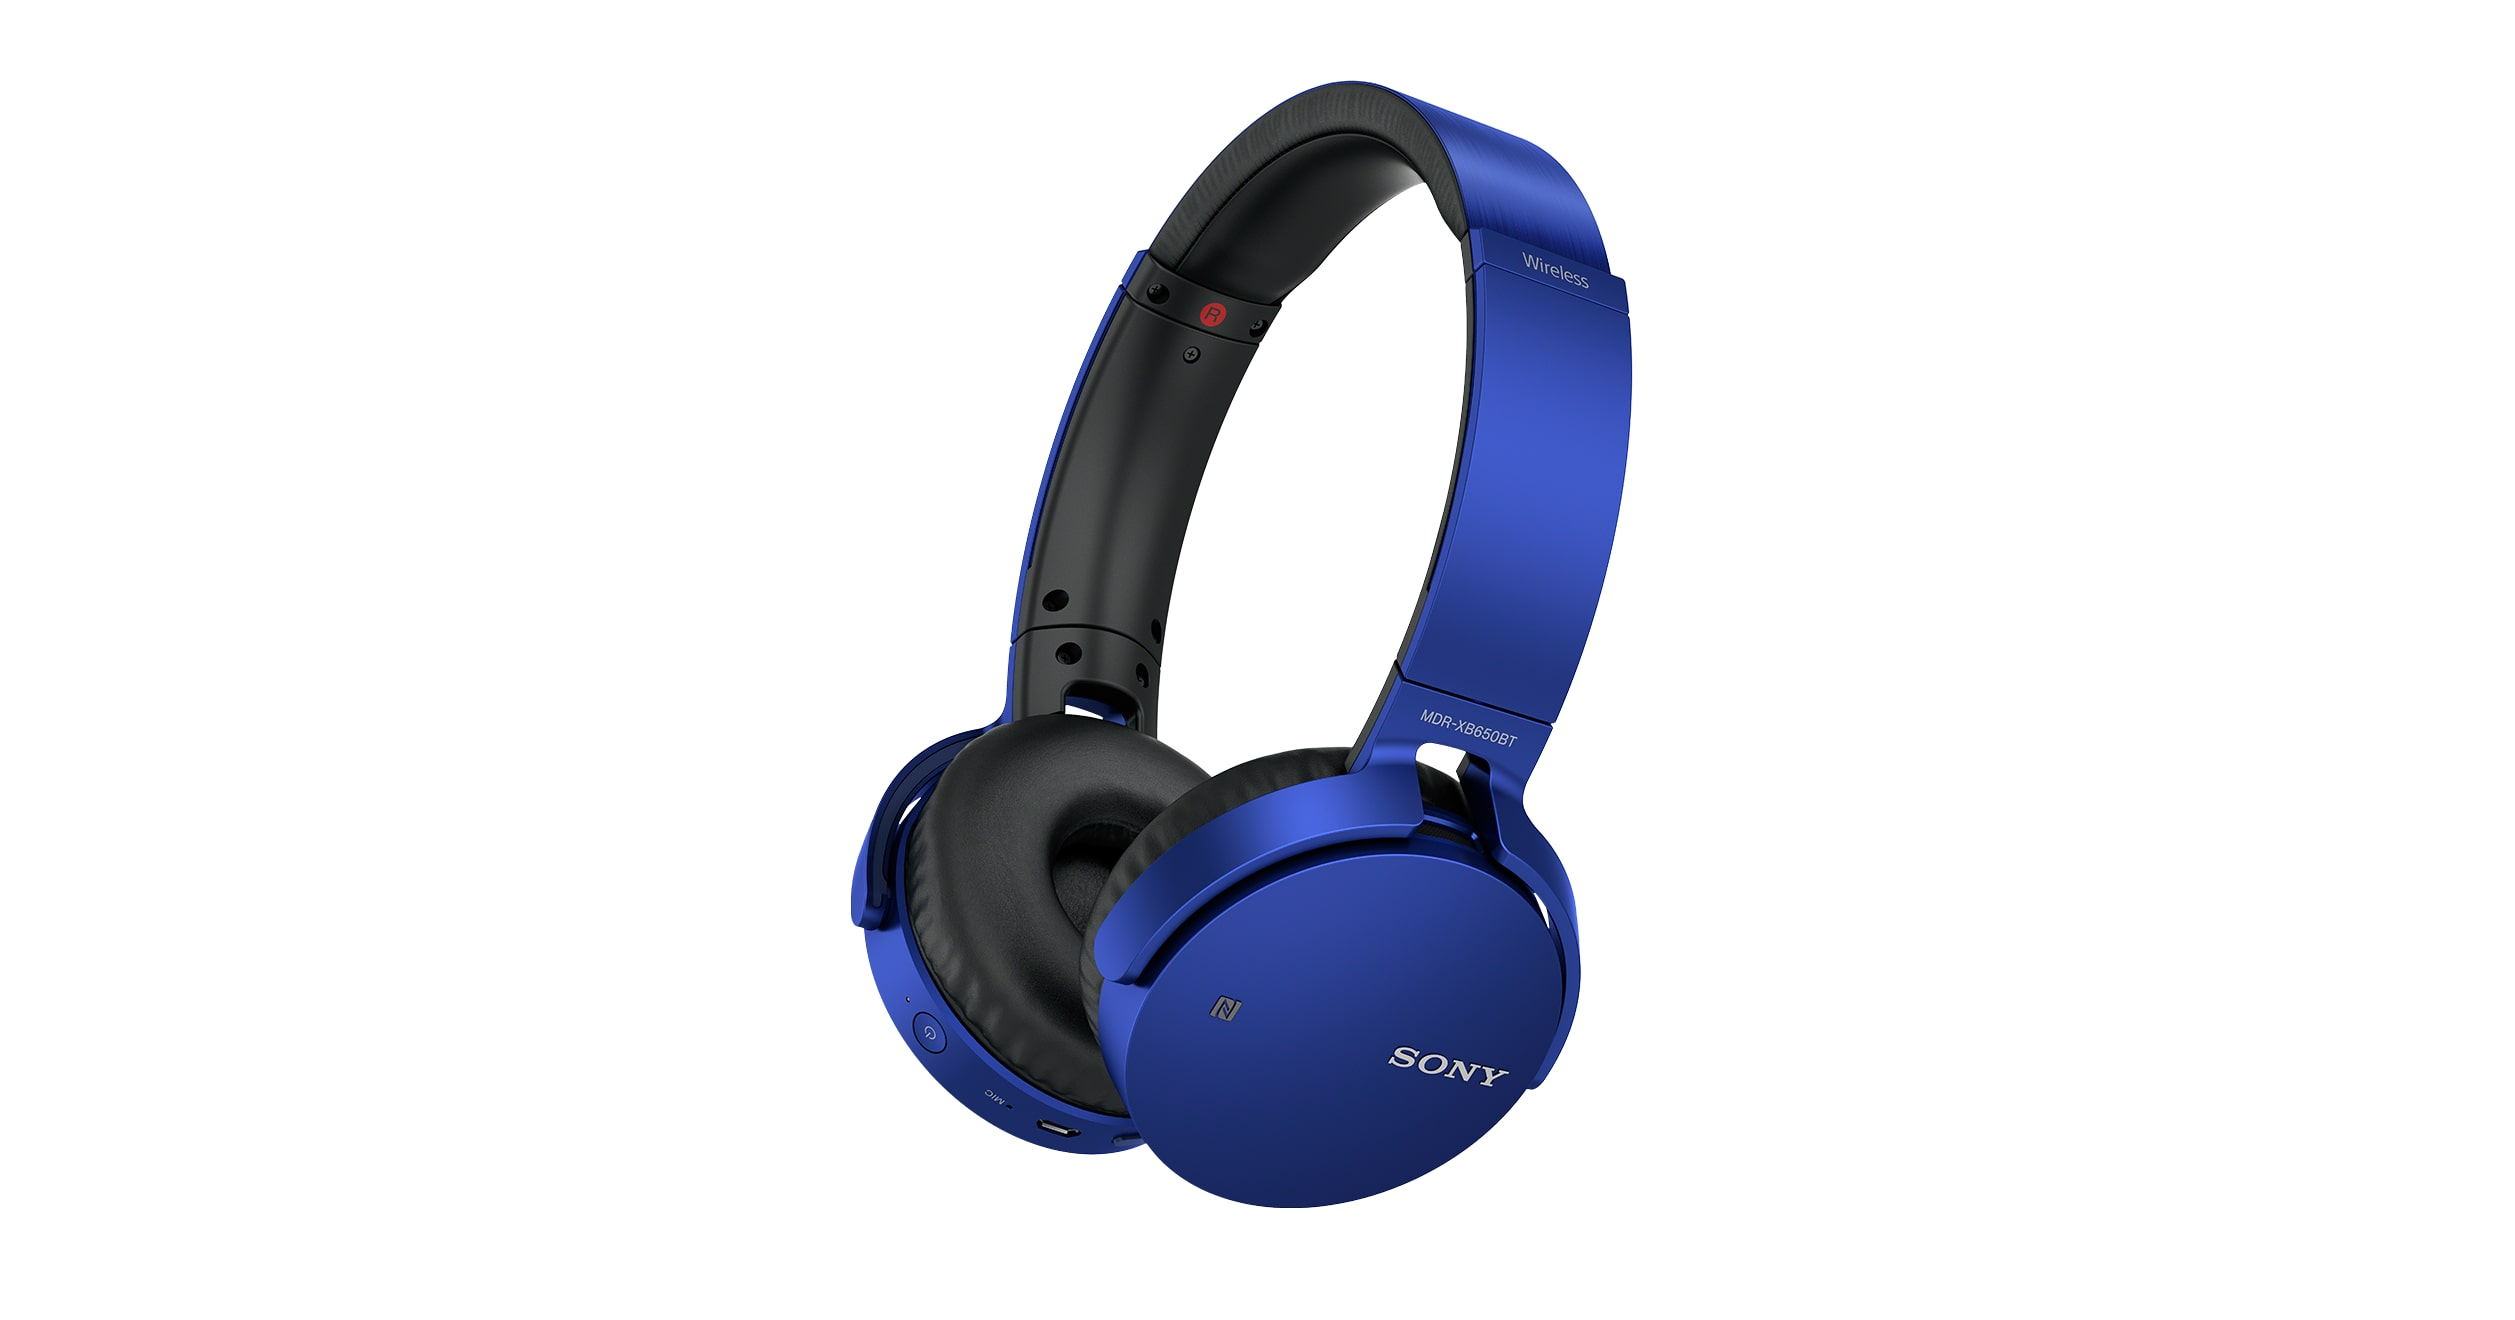 8bfaf840bb4 Wireless Deep Bass Headphones with Bluetooth | MDR-XB650BT | Sony US